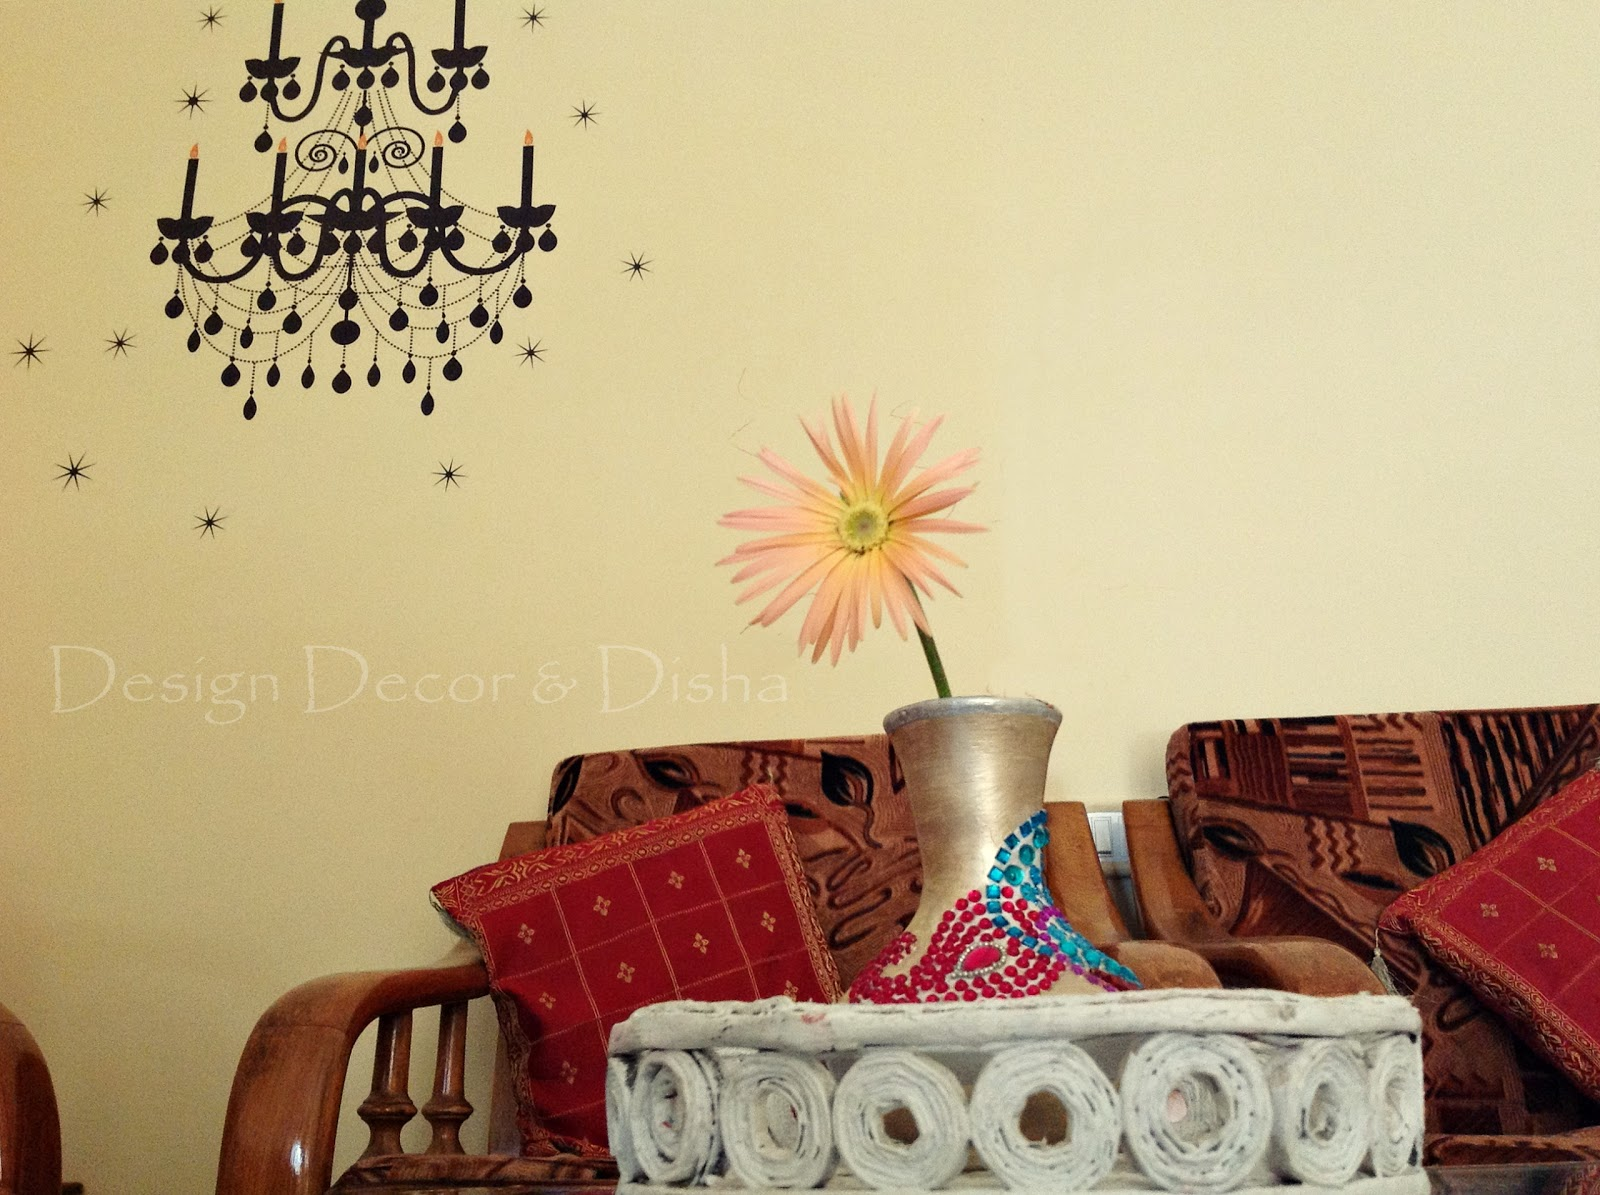 Design decor disha an indian design decor blog kwikdeko but who wants to remove it its enhancing beauty of my space and adorning my living room wall want to know more about kwikdeko read on amipublicfo Choice Image